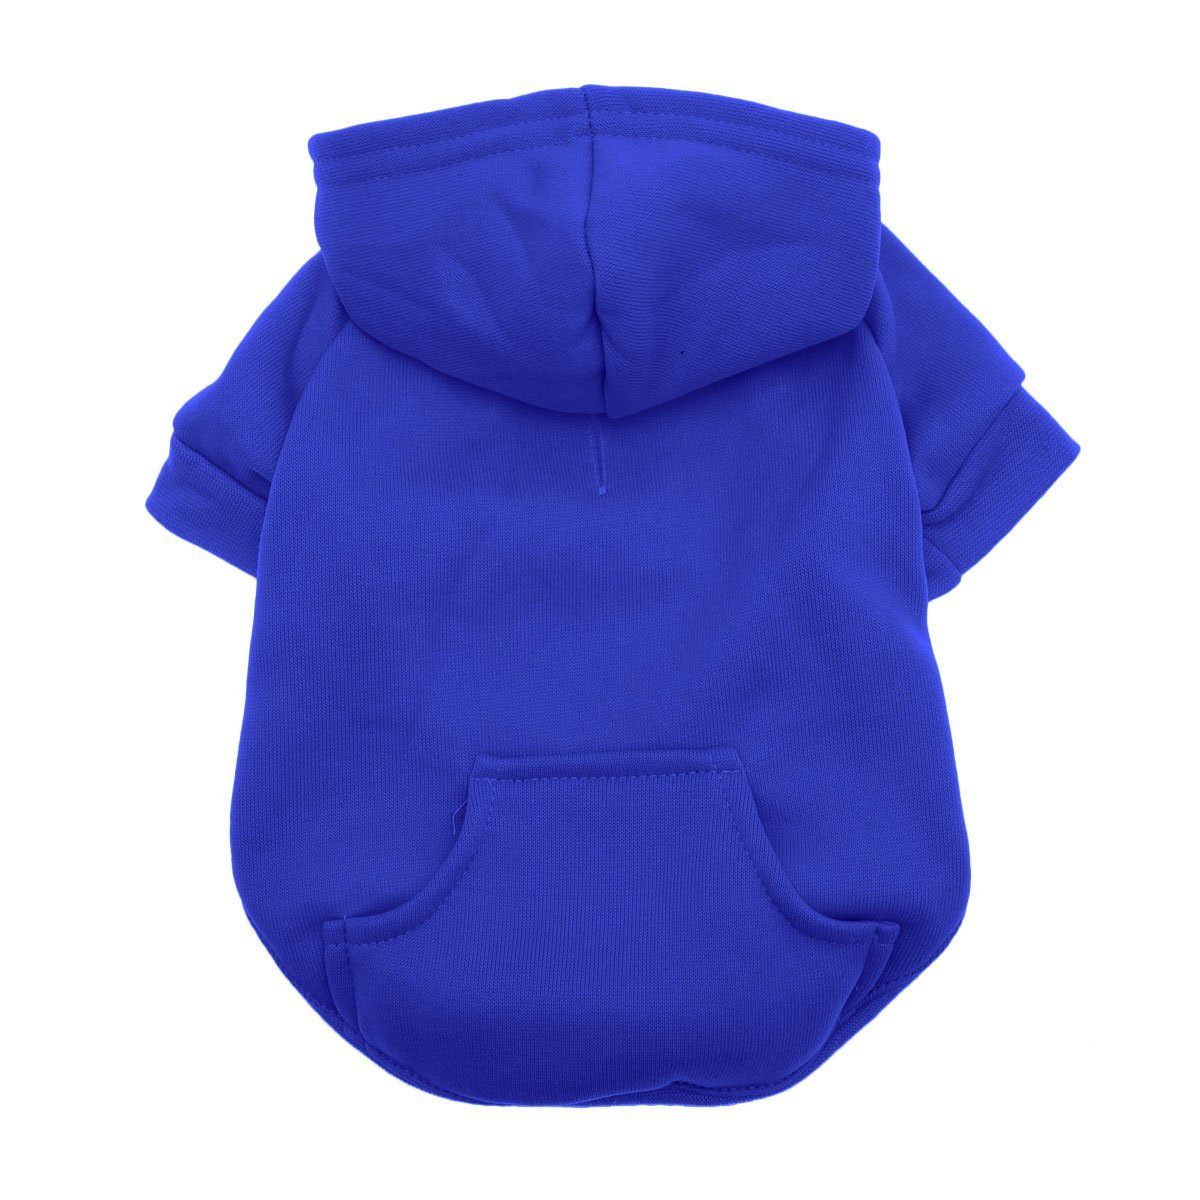 bluee X-Small bluee X-Small Barking Basics Dog Hoodie, X-Small, bluee